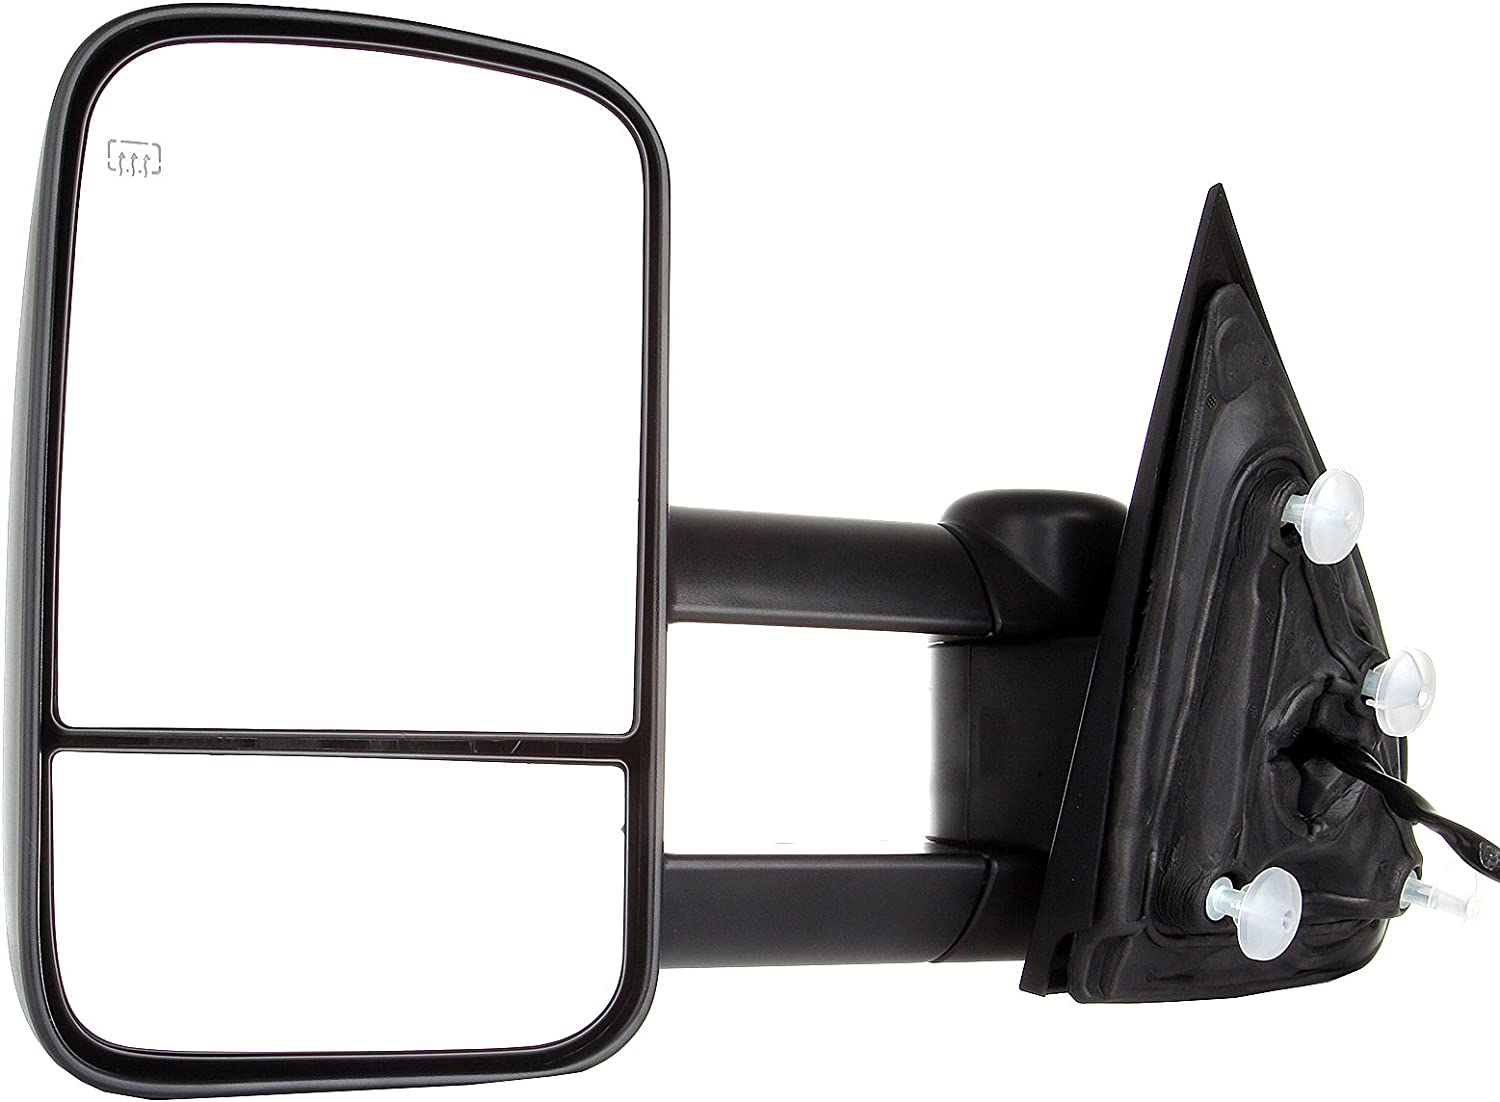 FINDAUTO Rear View Tow Mirrors Compatible with 2014-2018 Chevy GMC 1500 2015-2019 Chevy GMC 2500 HD 3500 HD Towing Mirrors with Left and Right Side Power Heated Without Turn Signal Light